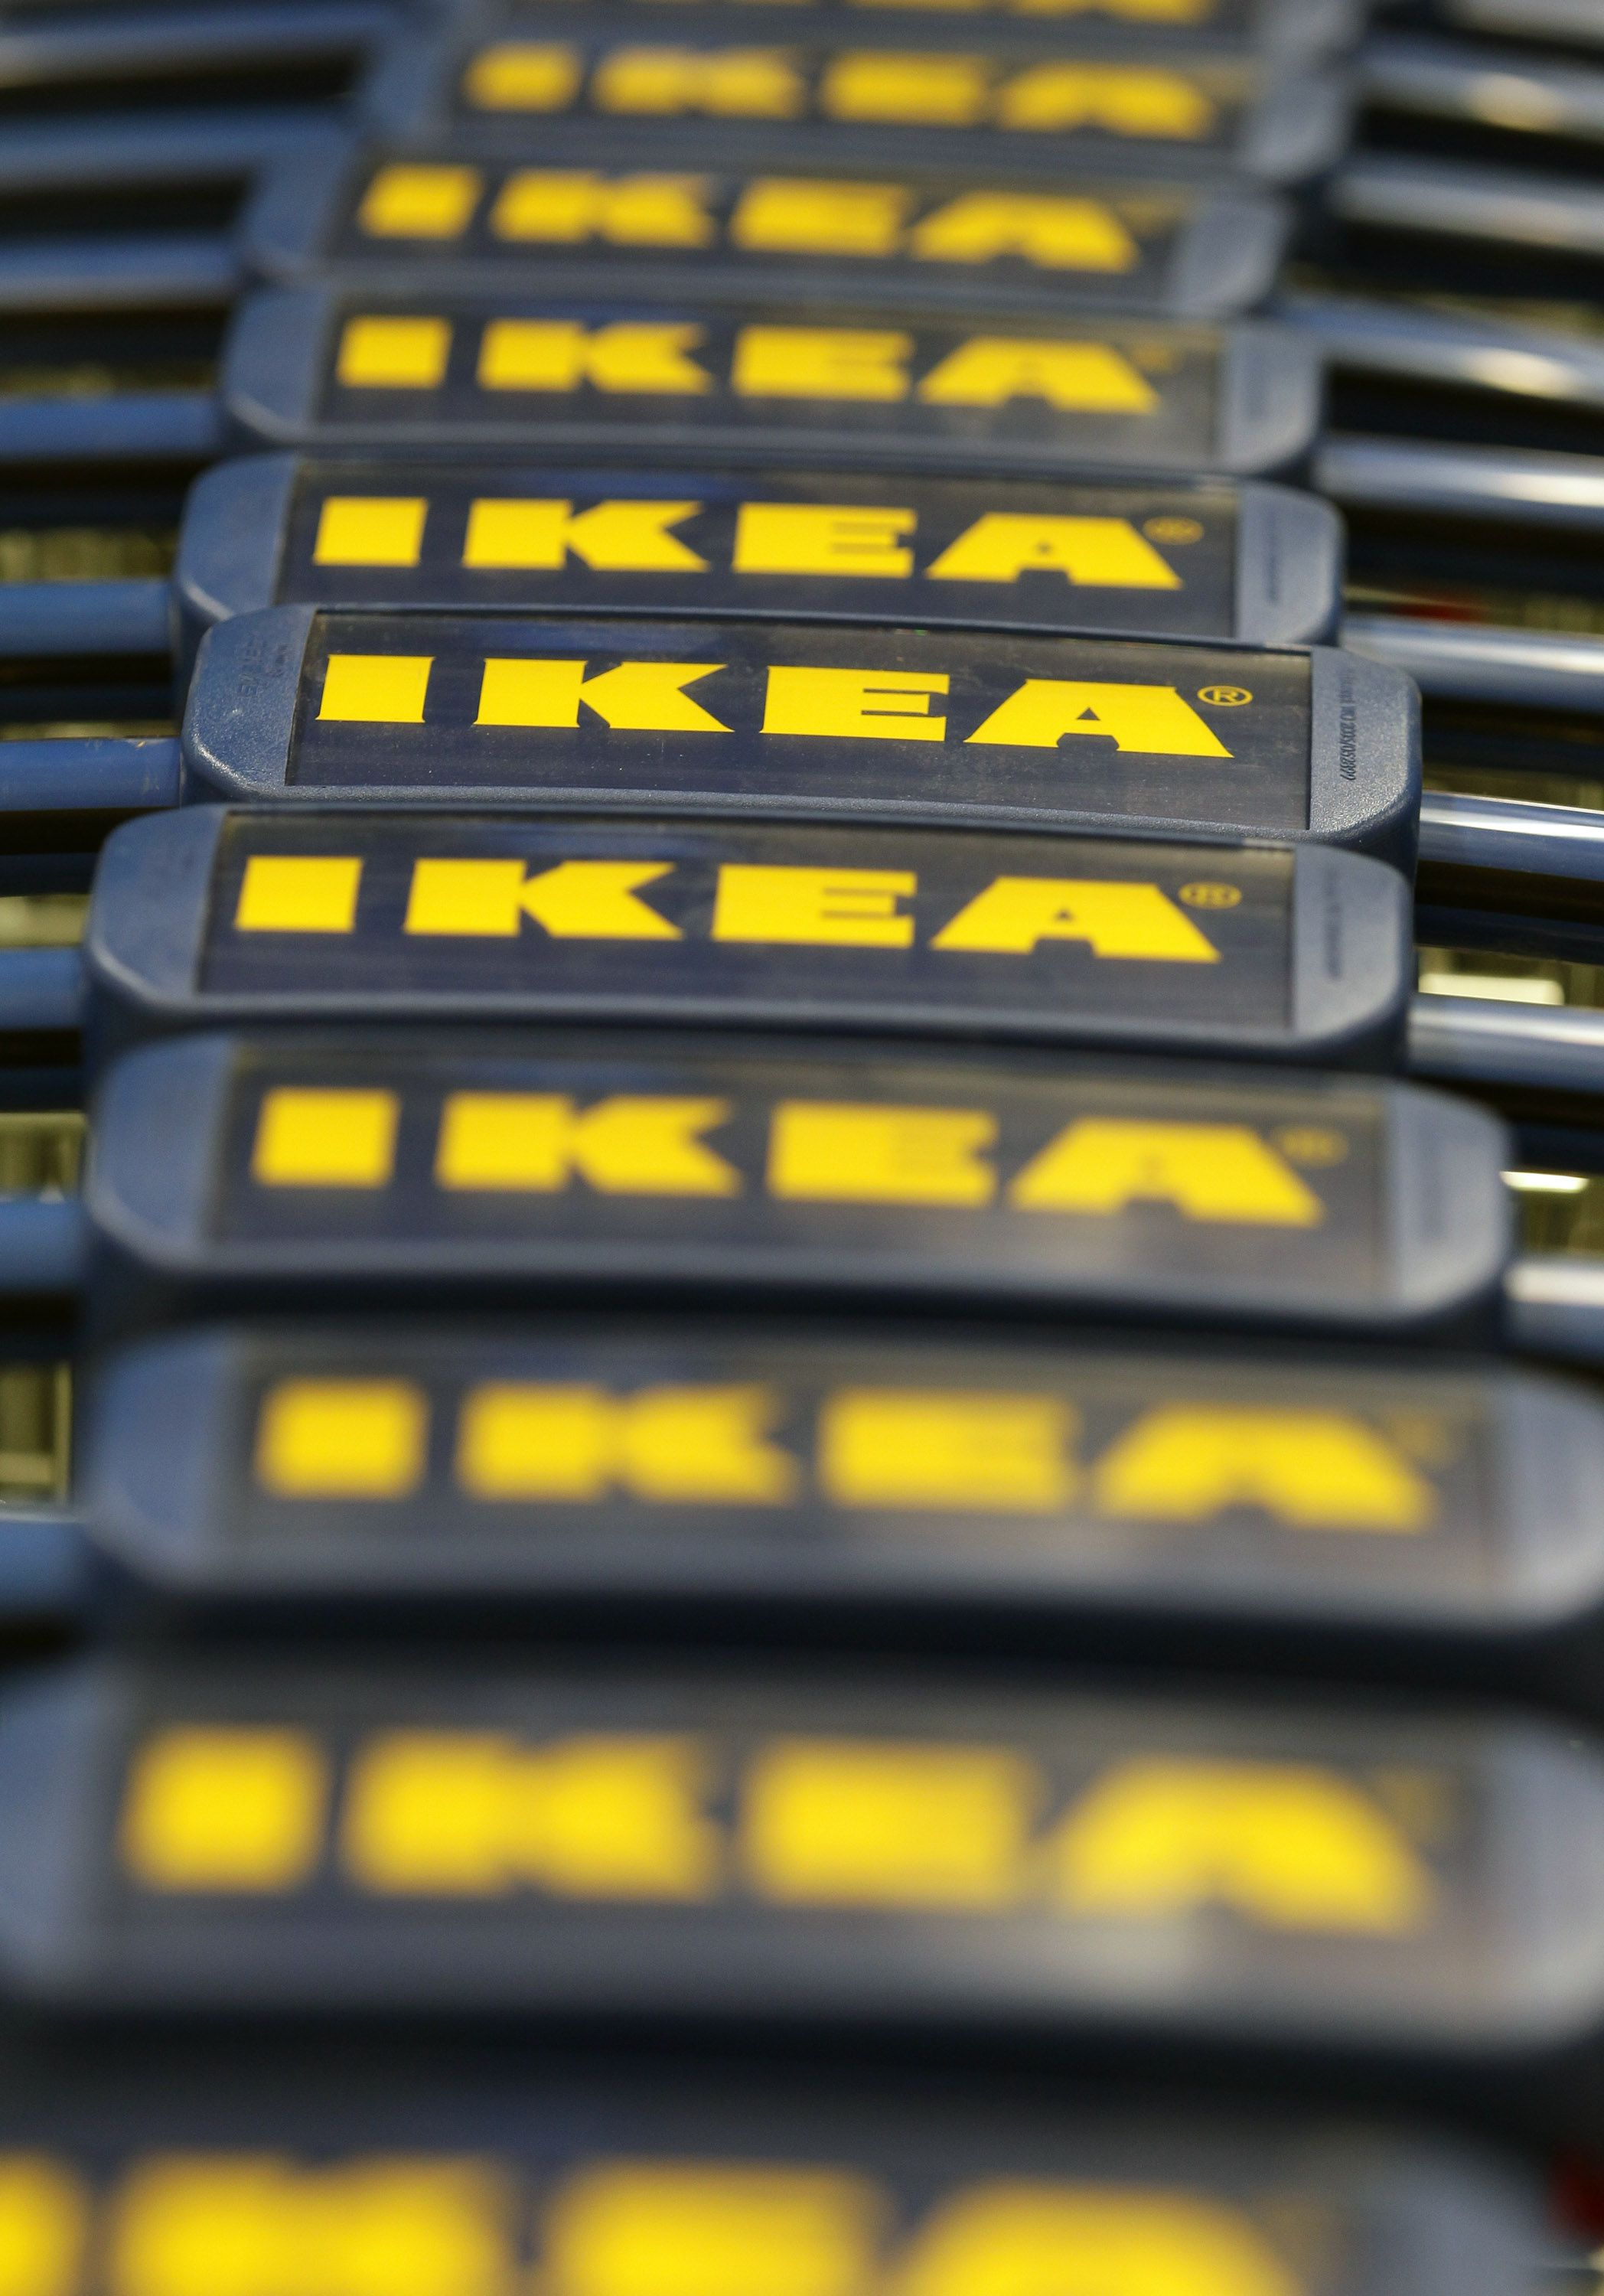 Shopping carts at Ikea Berlin.